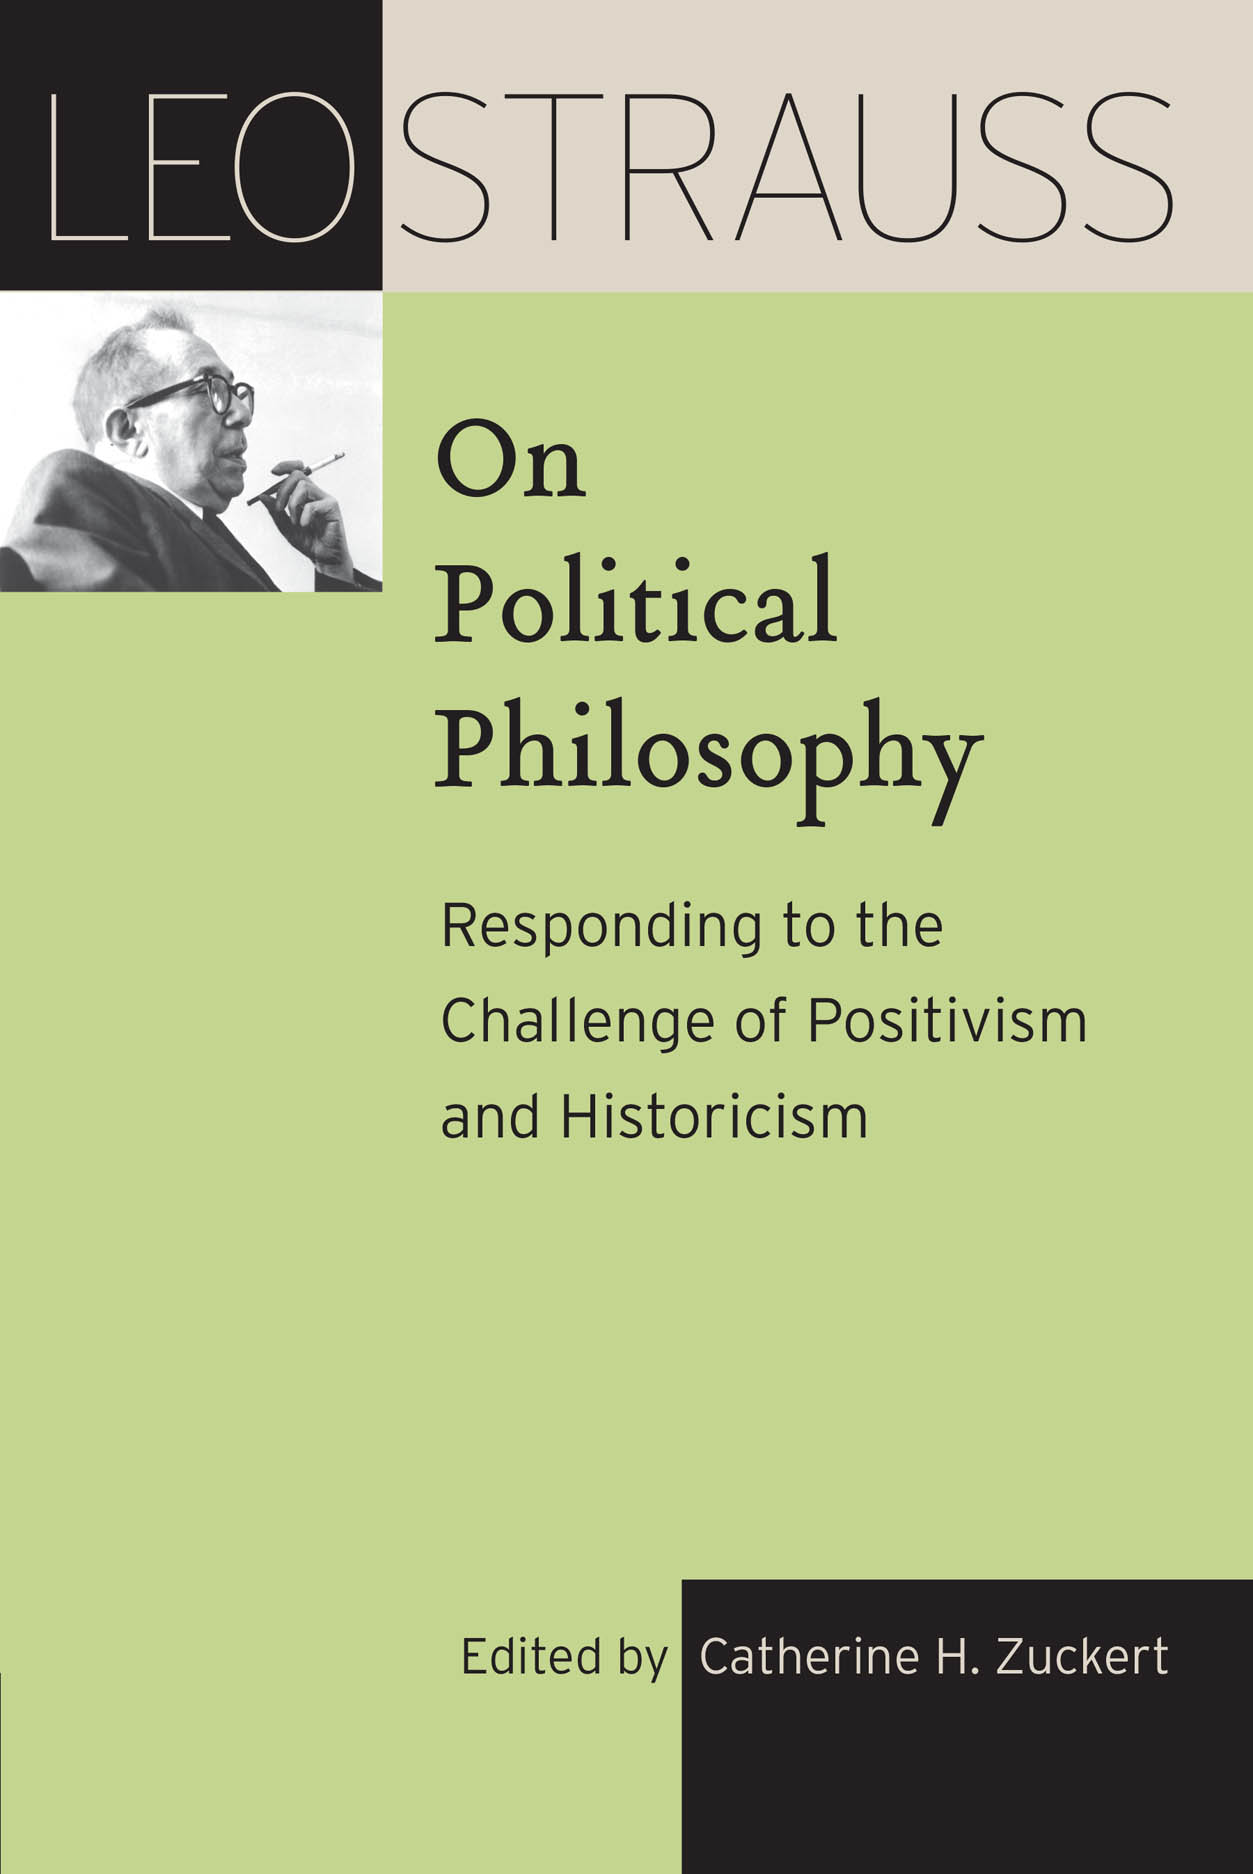 Leo Strauss on Political Philosophy: Responding to the Challenge of Positivism and Historicism